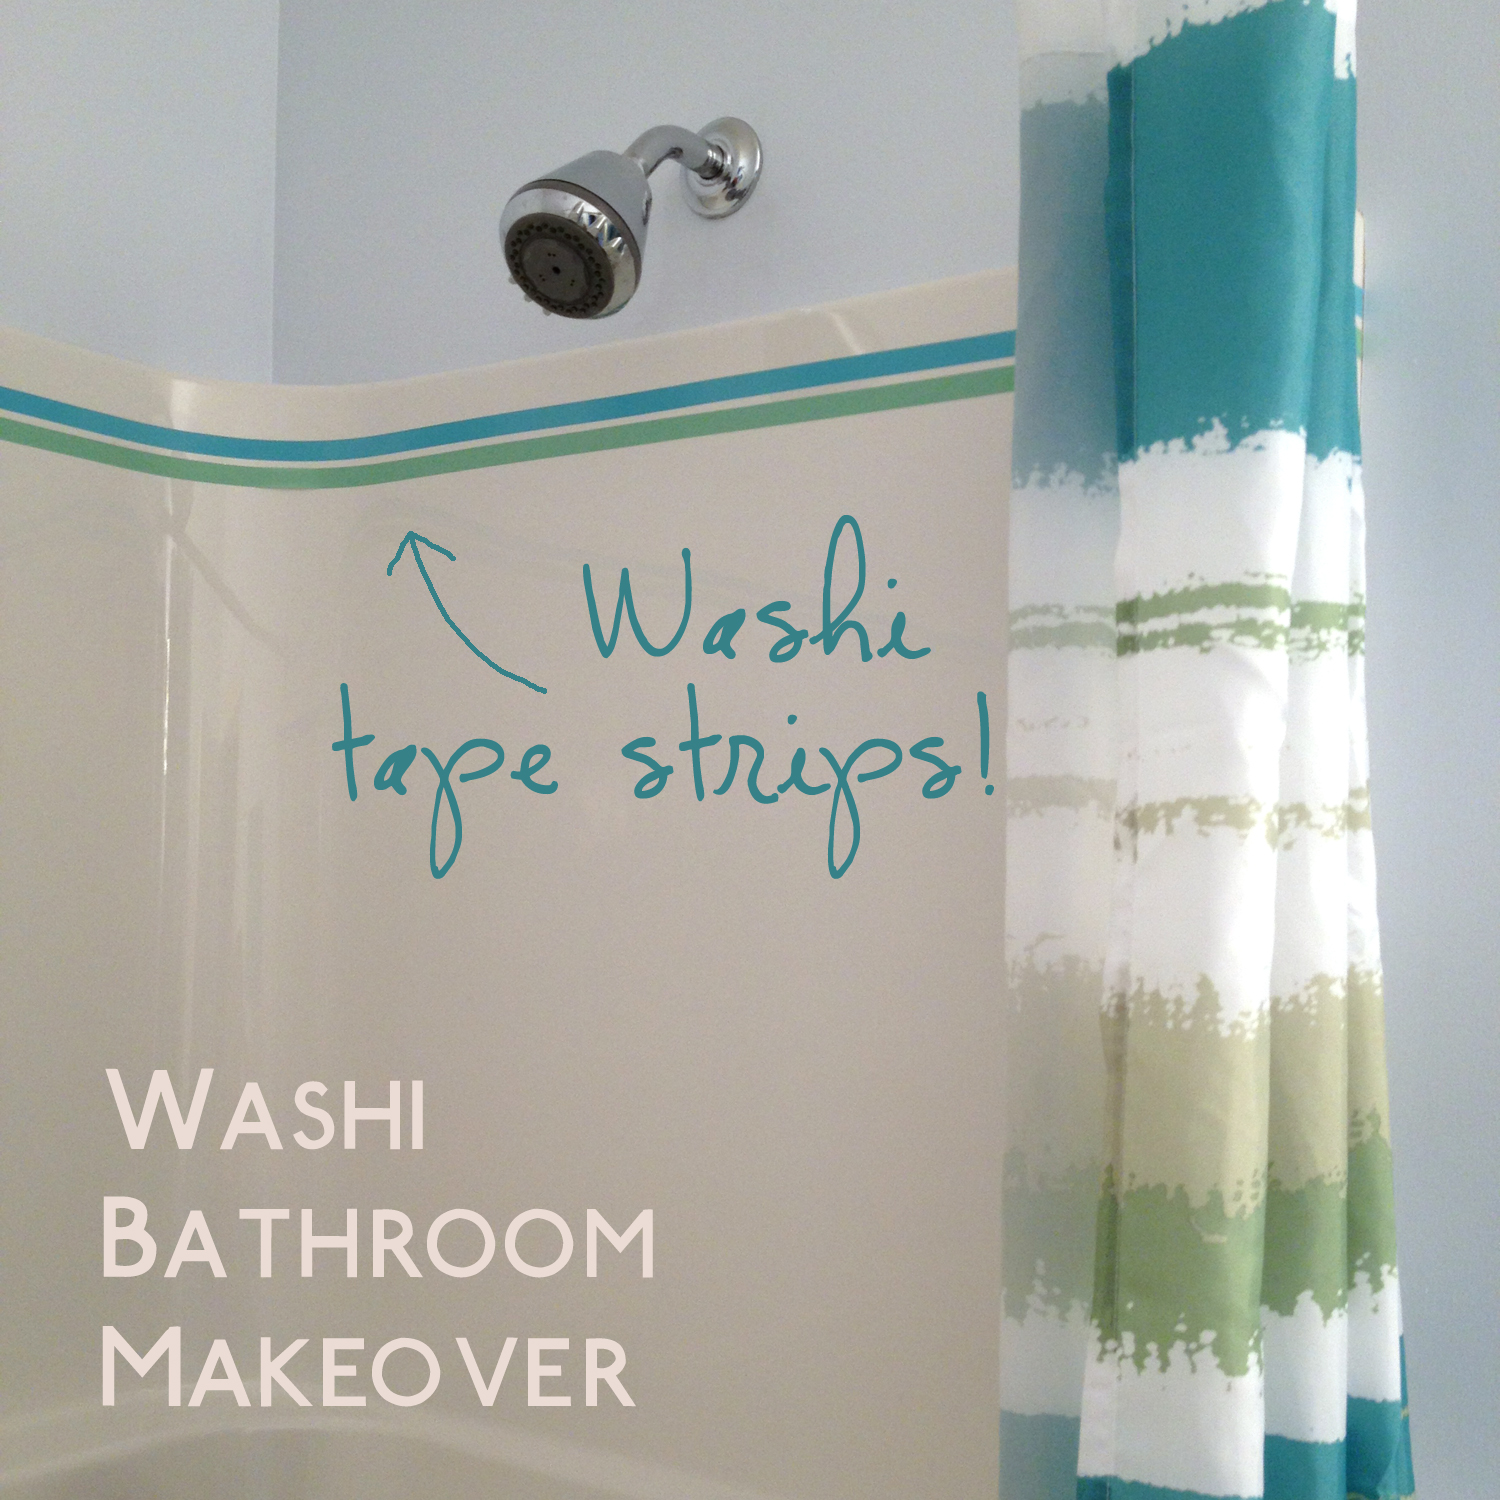 What happened next washi tape bathroom makeover